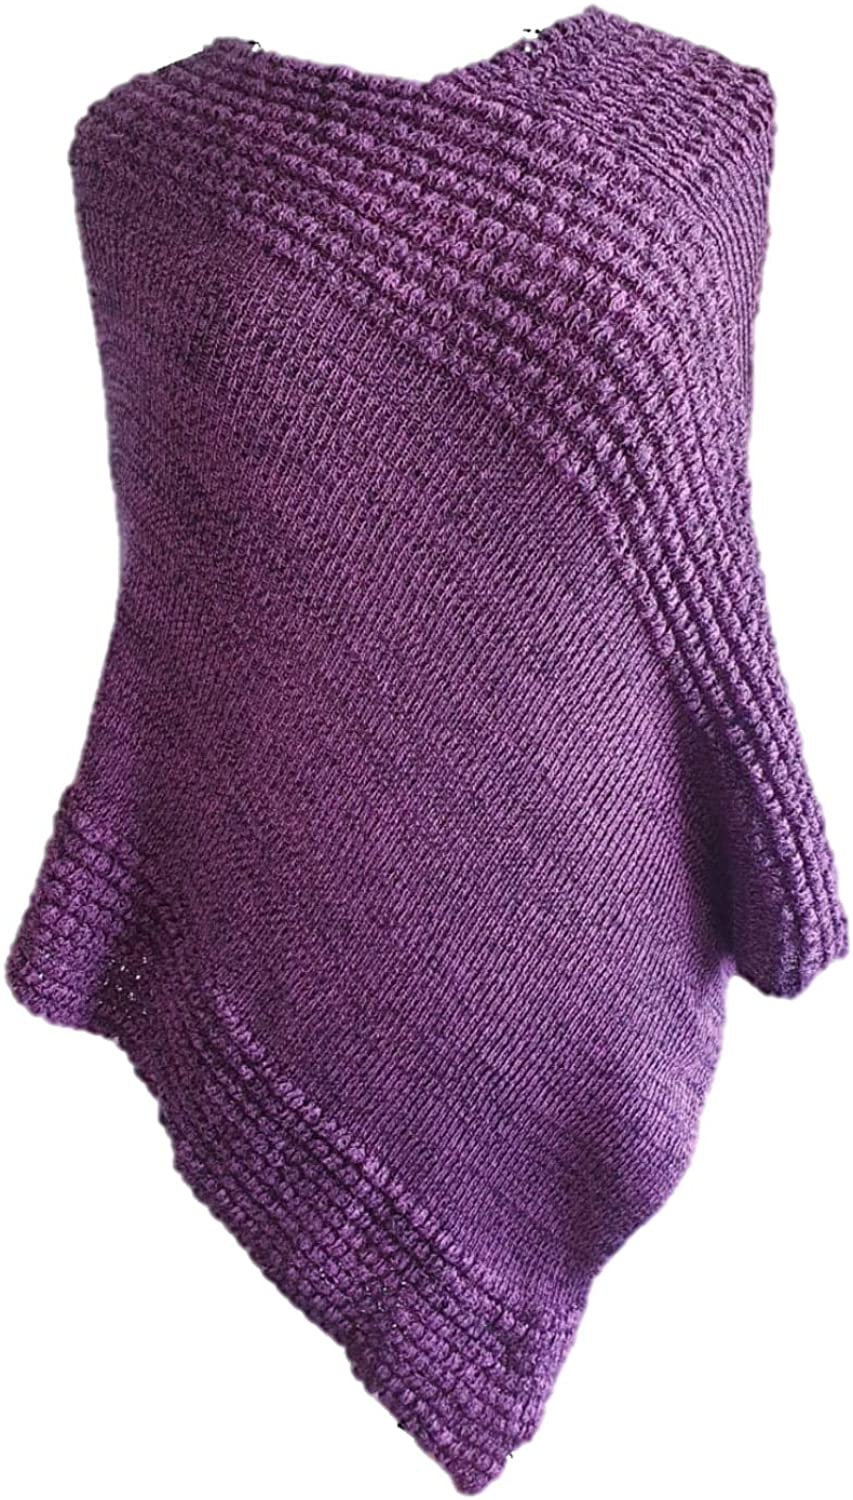 Mill House Knitwear Womens Poncho. 100% Cotton, Individually Handcrafted in Ireland Soft and Flattering.